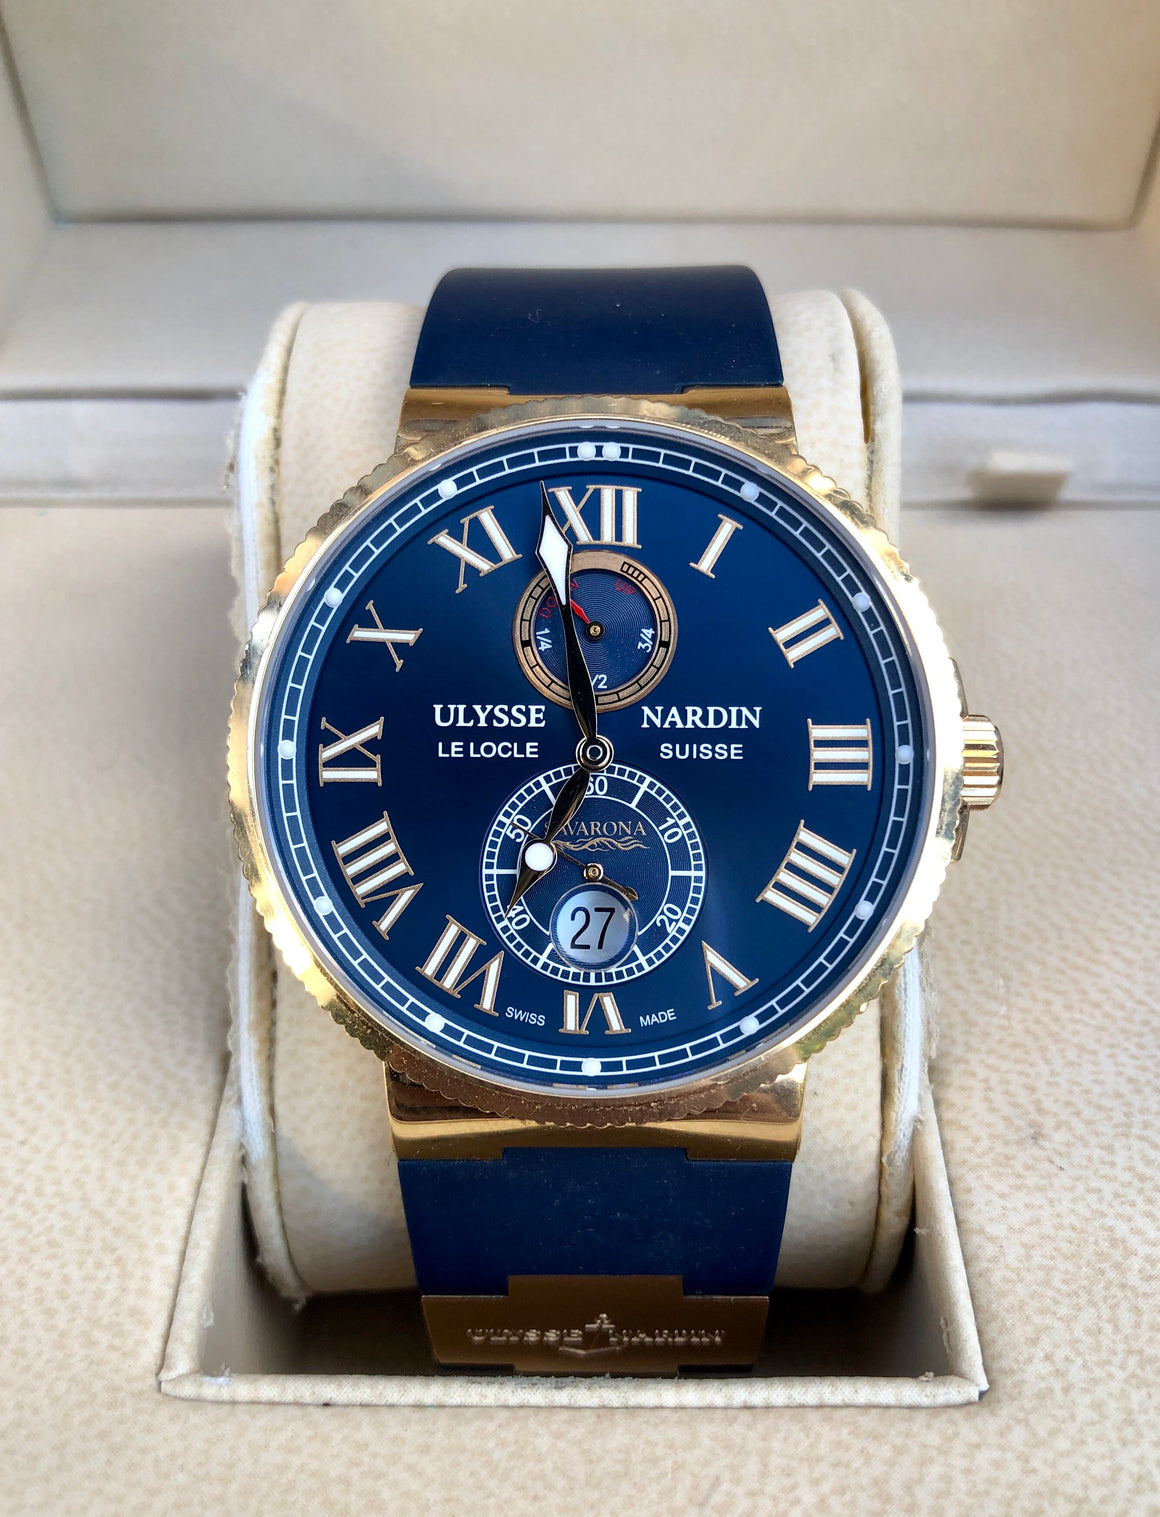 Ulysse Nardin Maxi Marine Chronometer Savarona Limited Edition Rose Gold